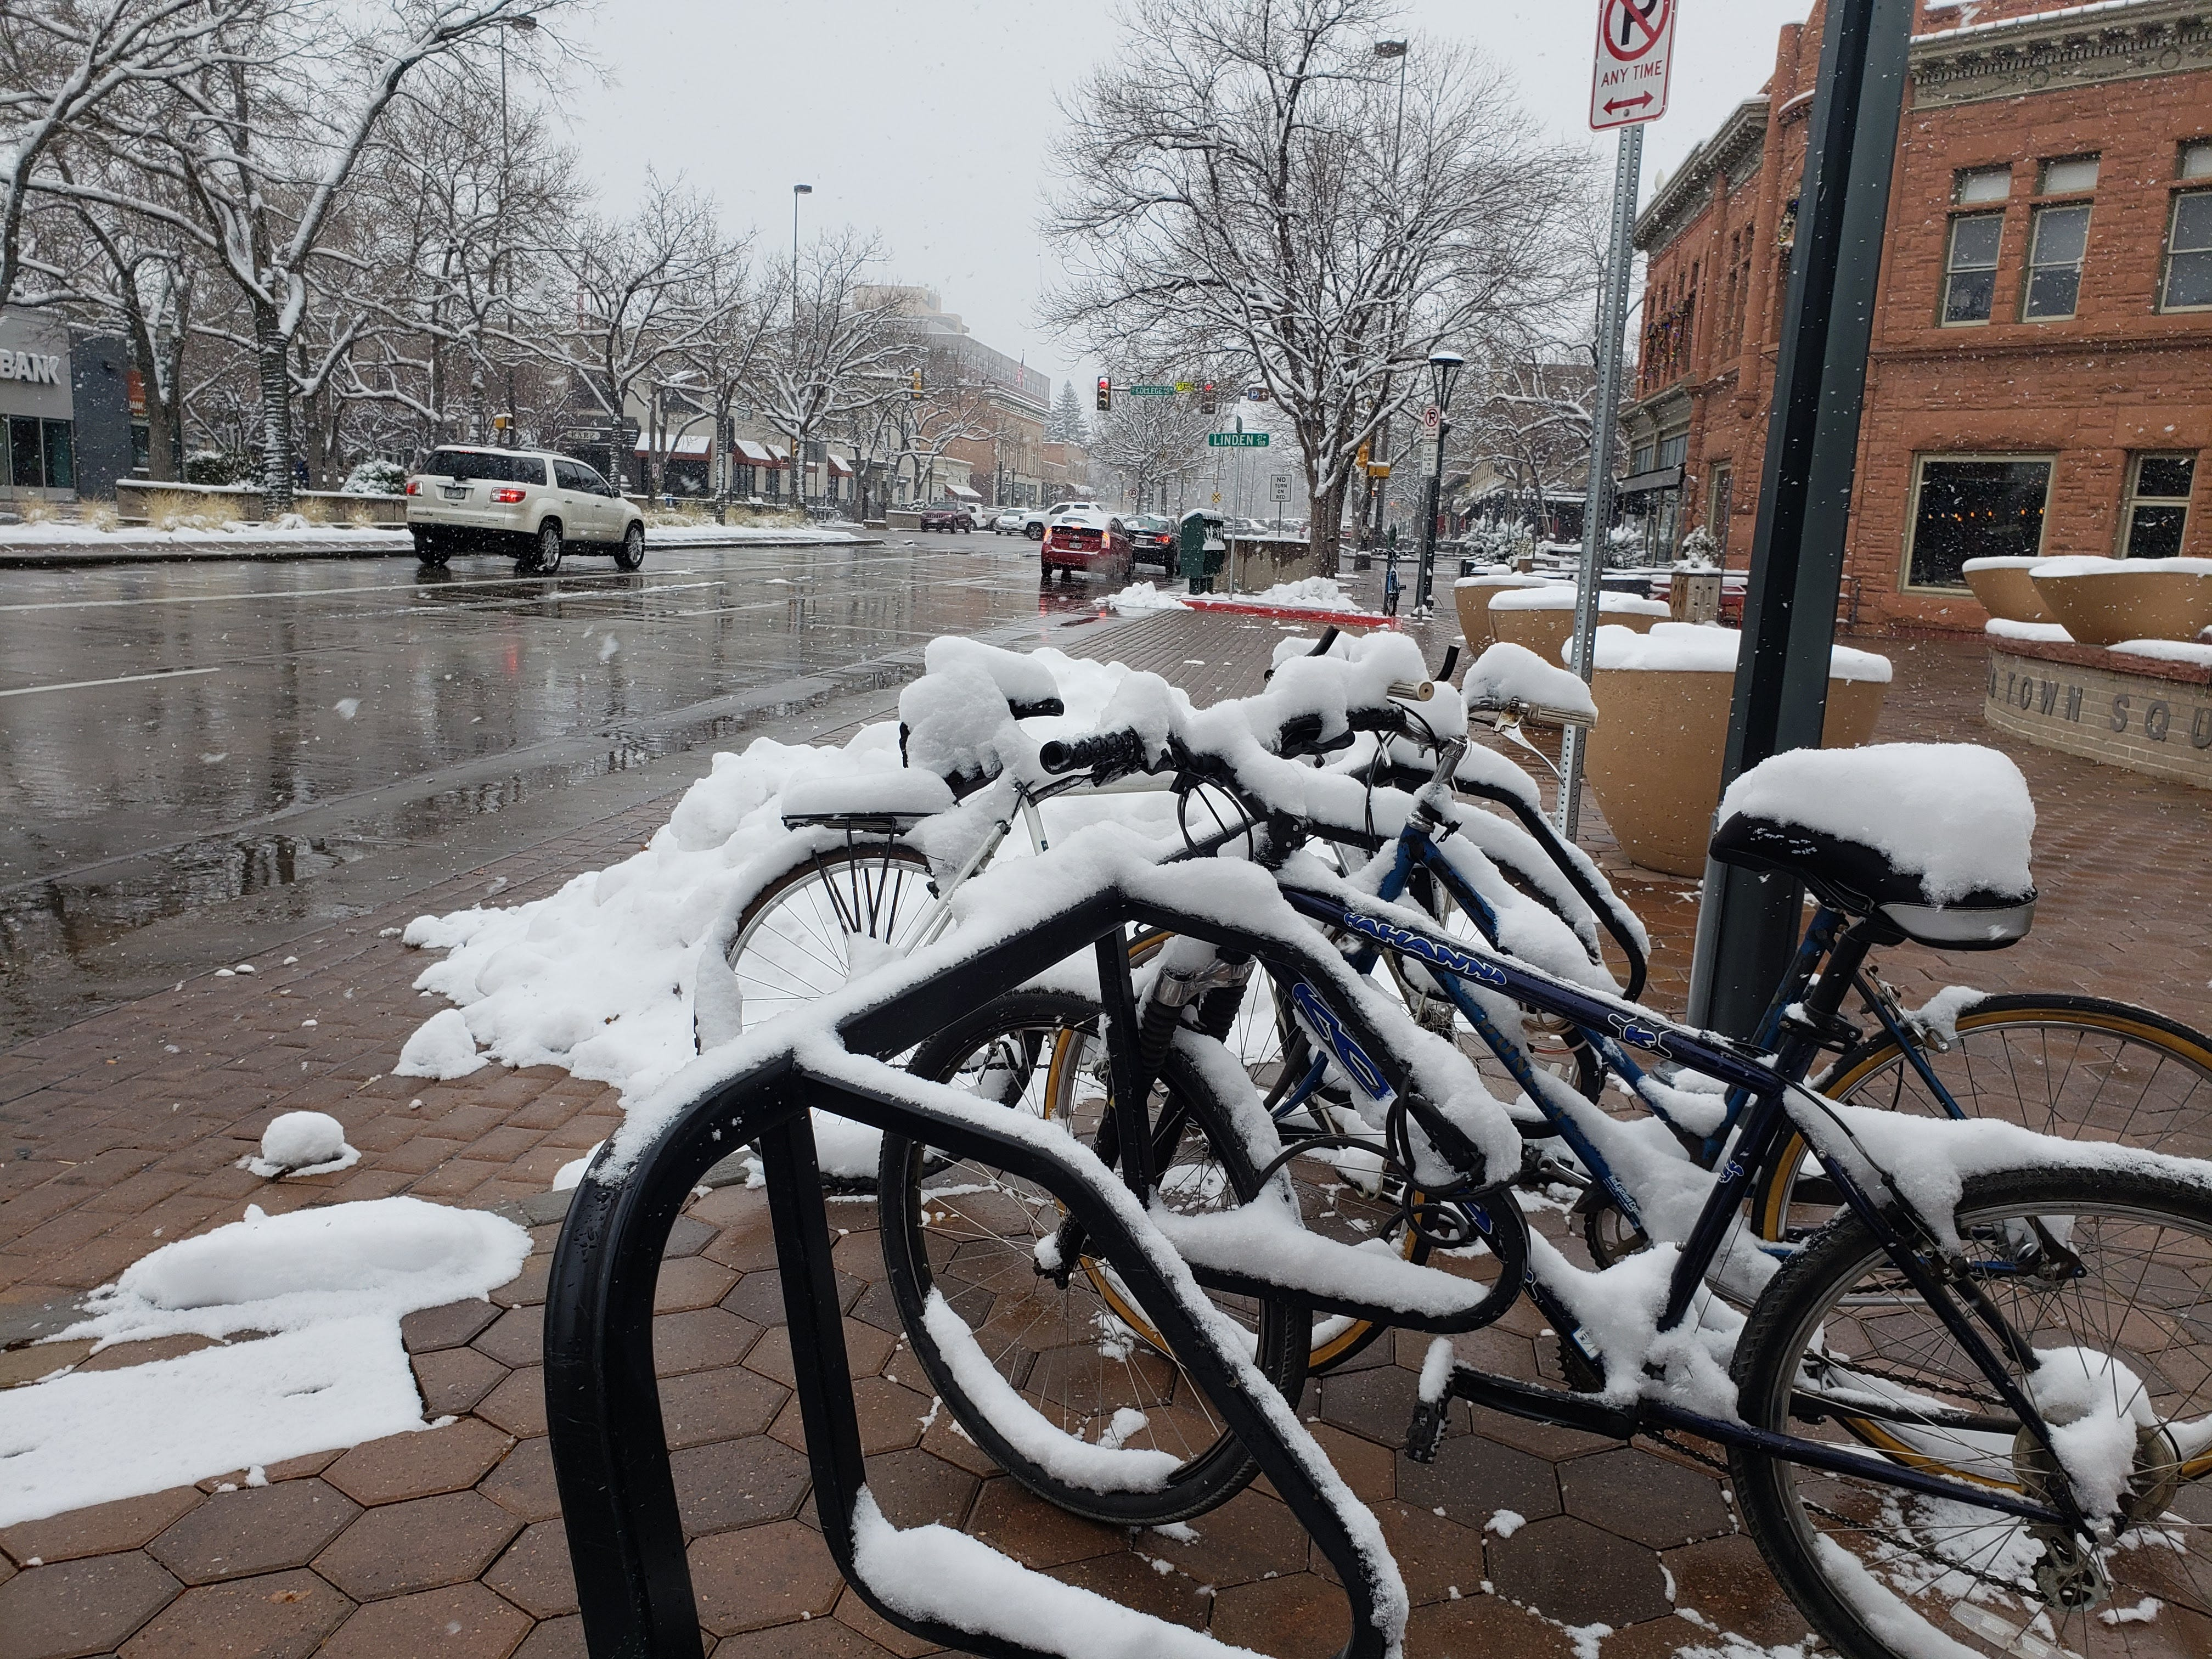 Scenes from a snowy Veteran's Day in Old Town Fort Collins on Nov. 11, 2018.